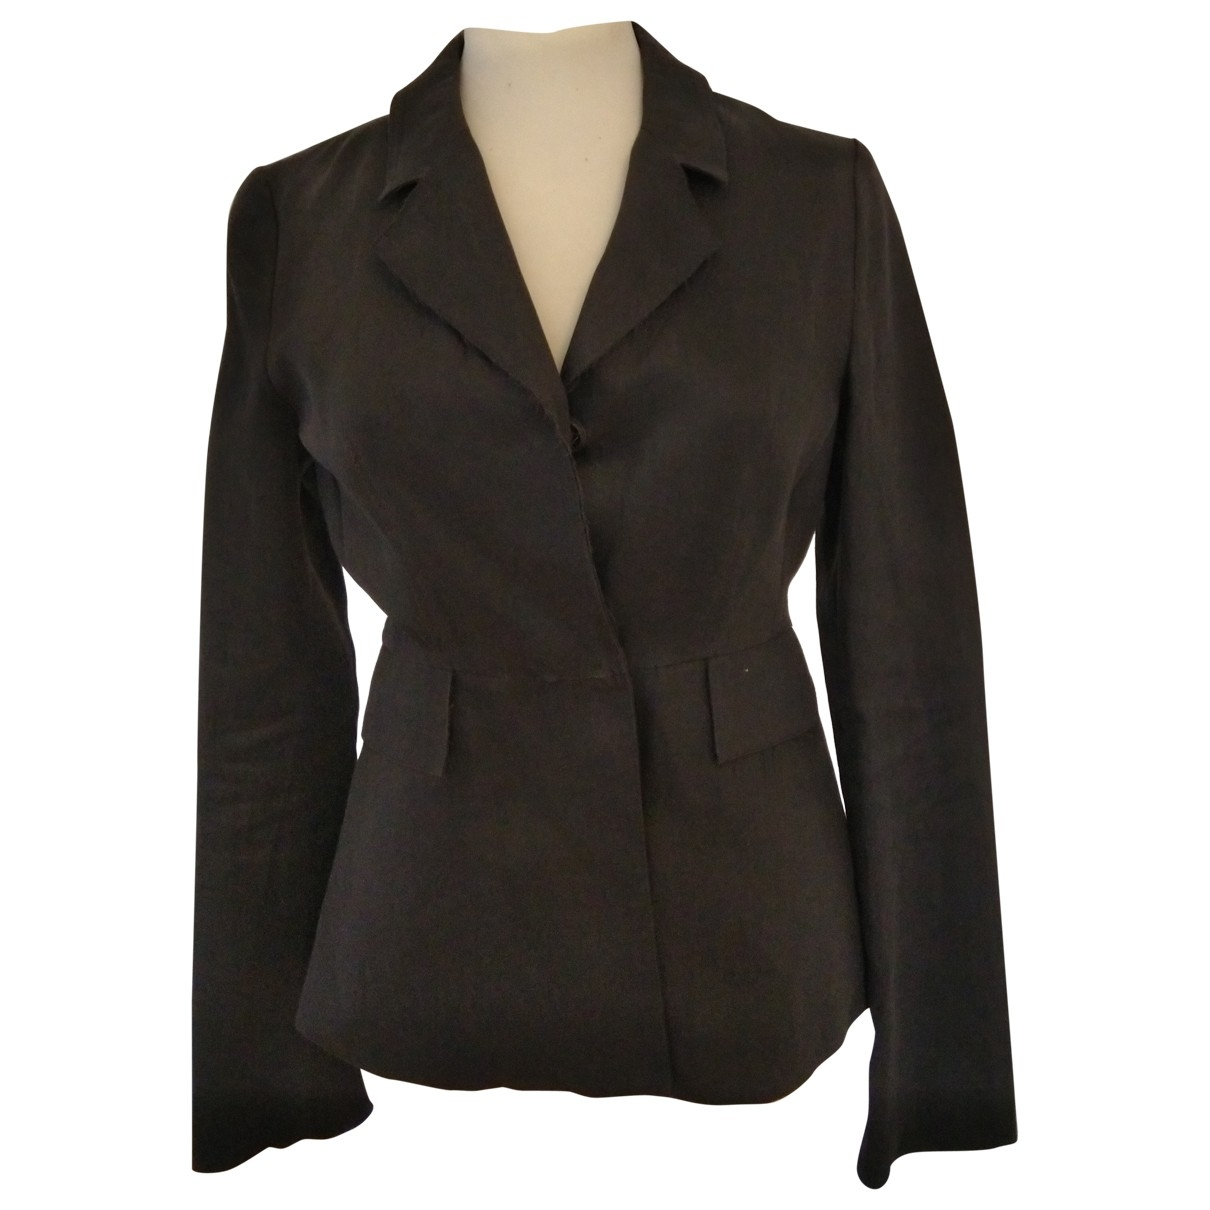 Acne Studios \N Anthracite Cotton jacket for Women 36 FR